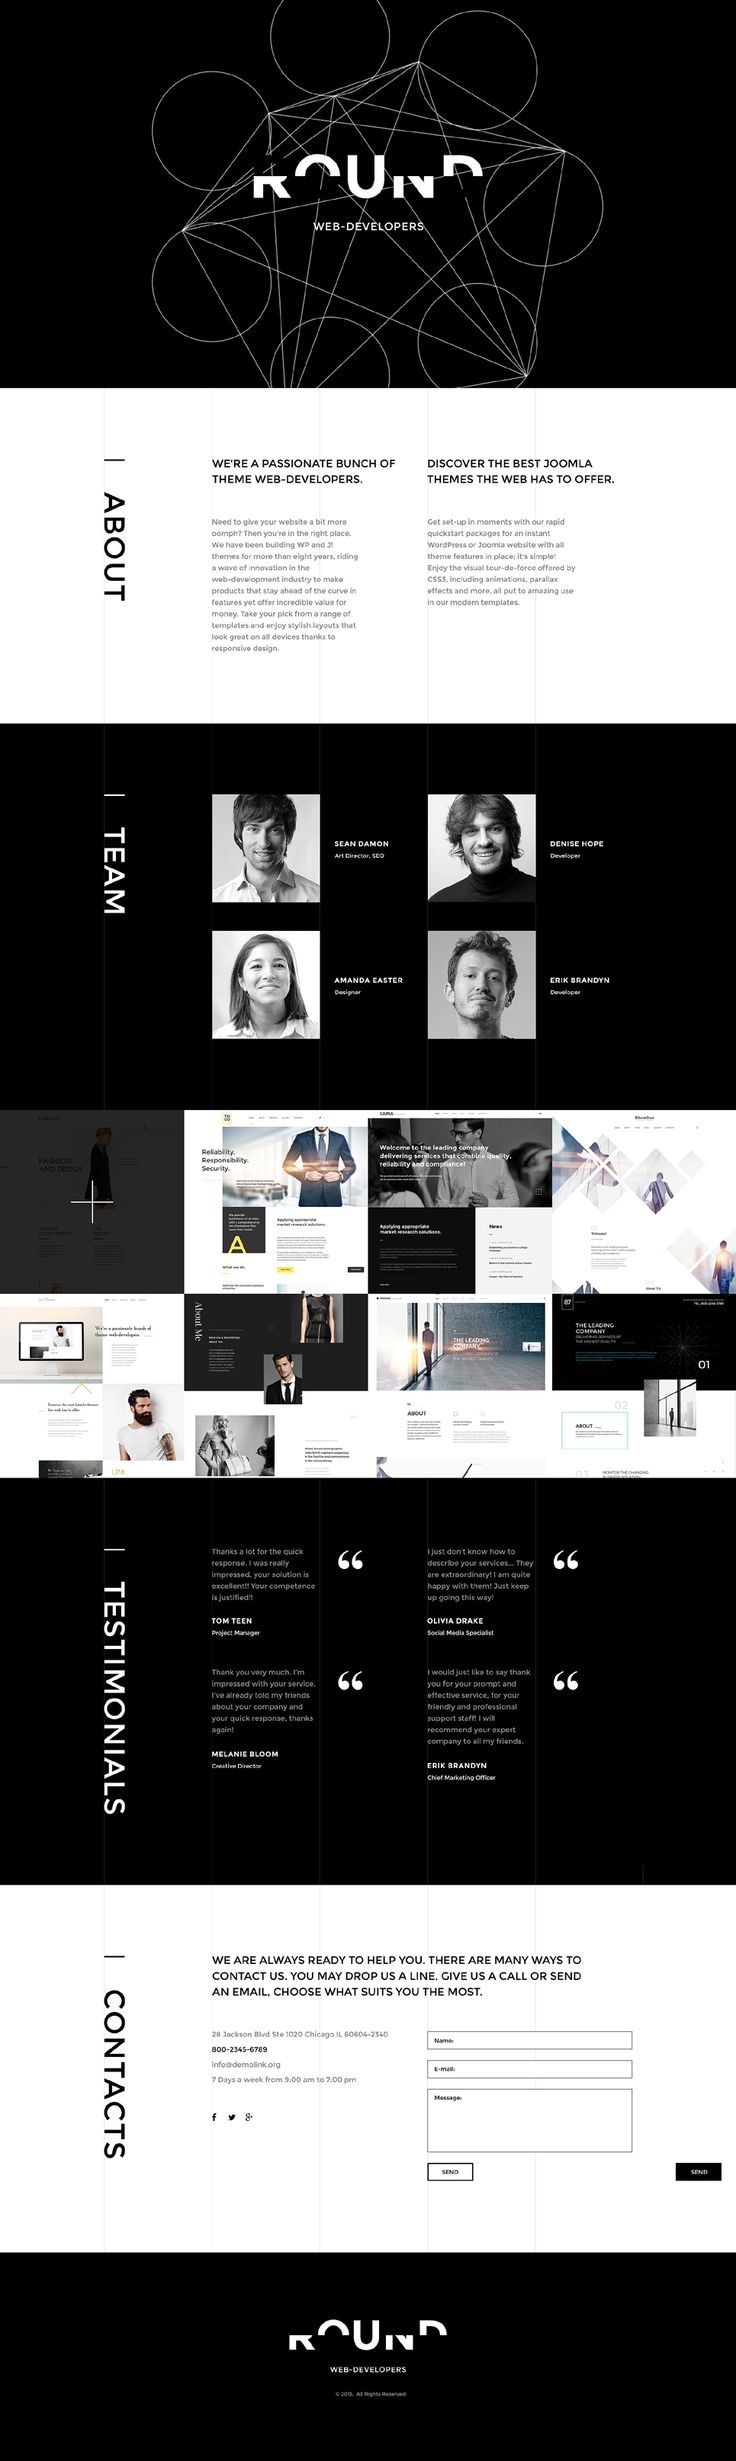 Web Development Responsive Landing Page Template #57827